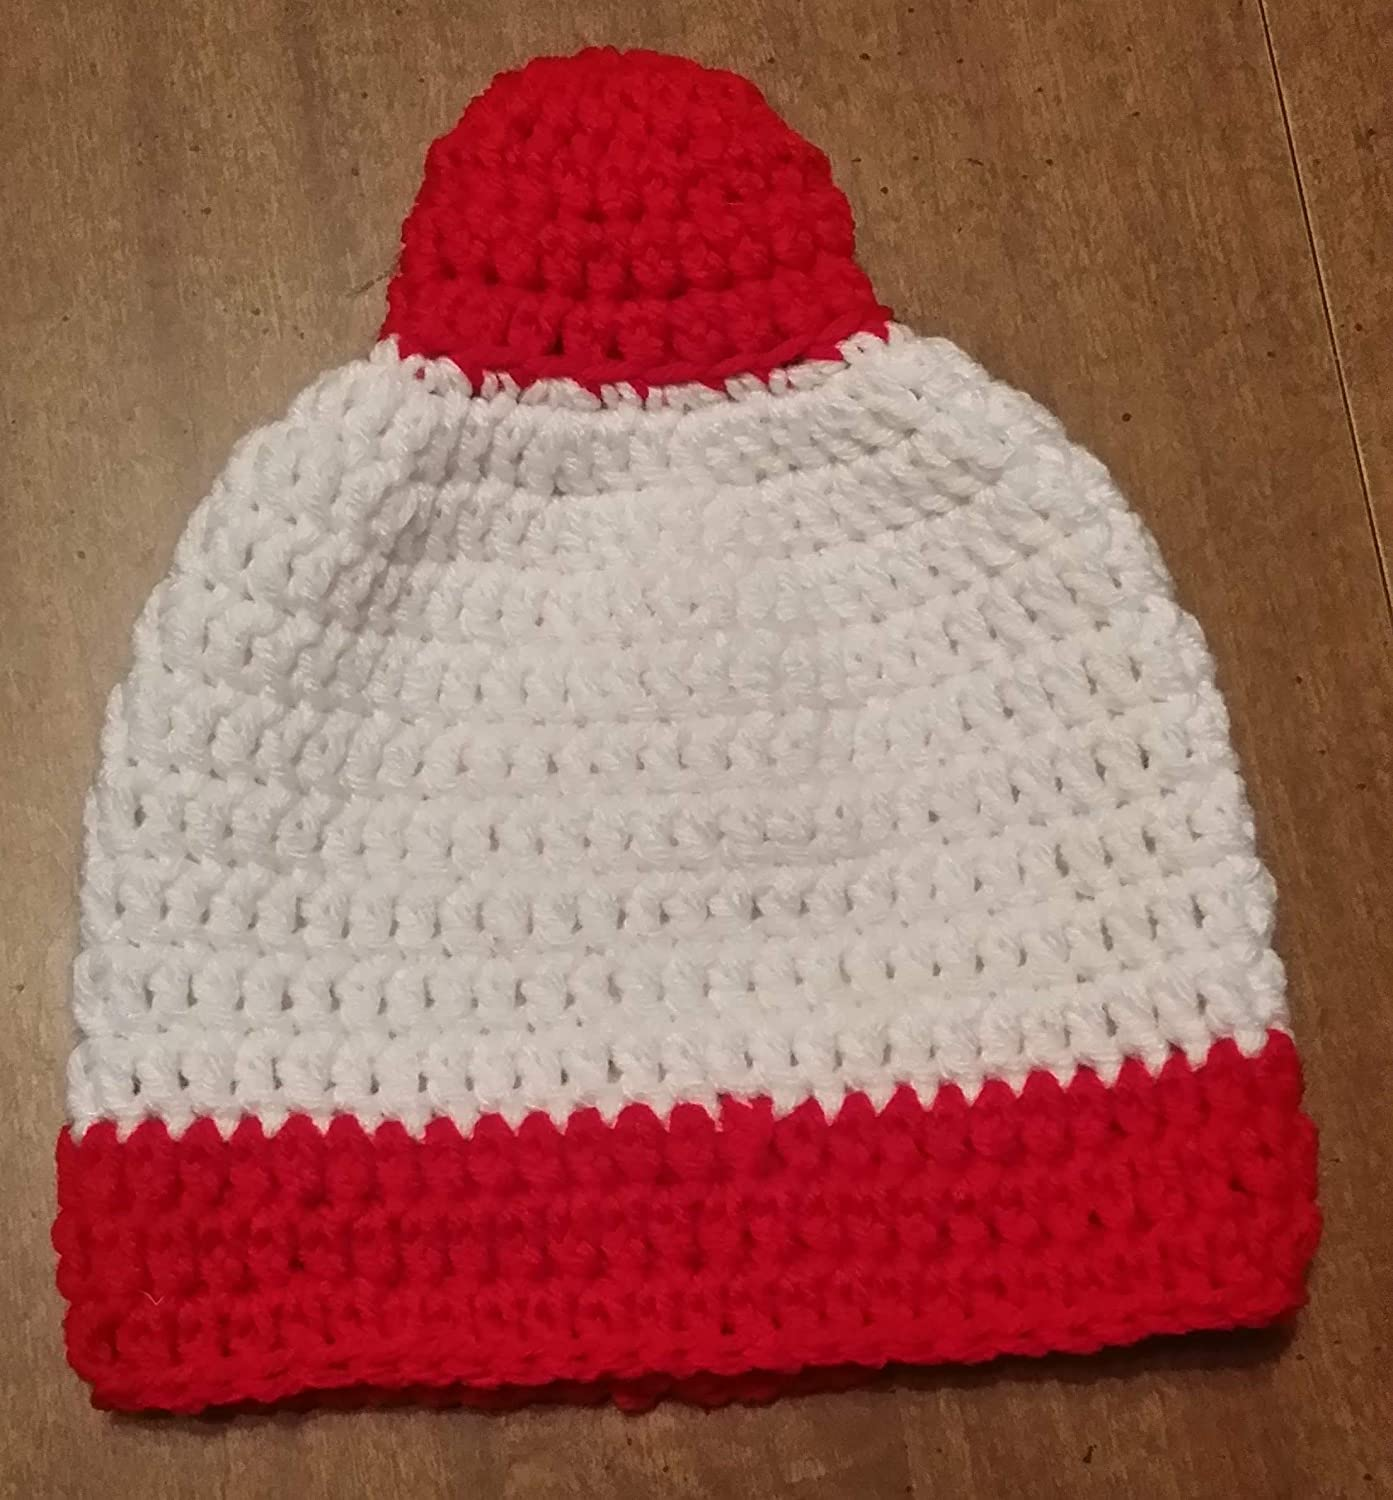 Hand Crocheted Toddler Fishing Bobber Beanie Hat red and white